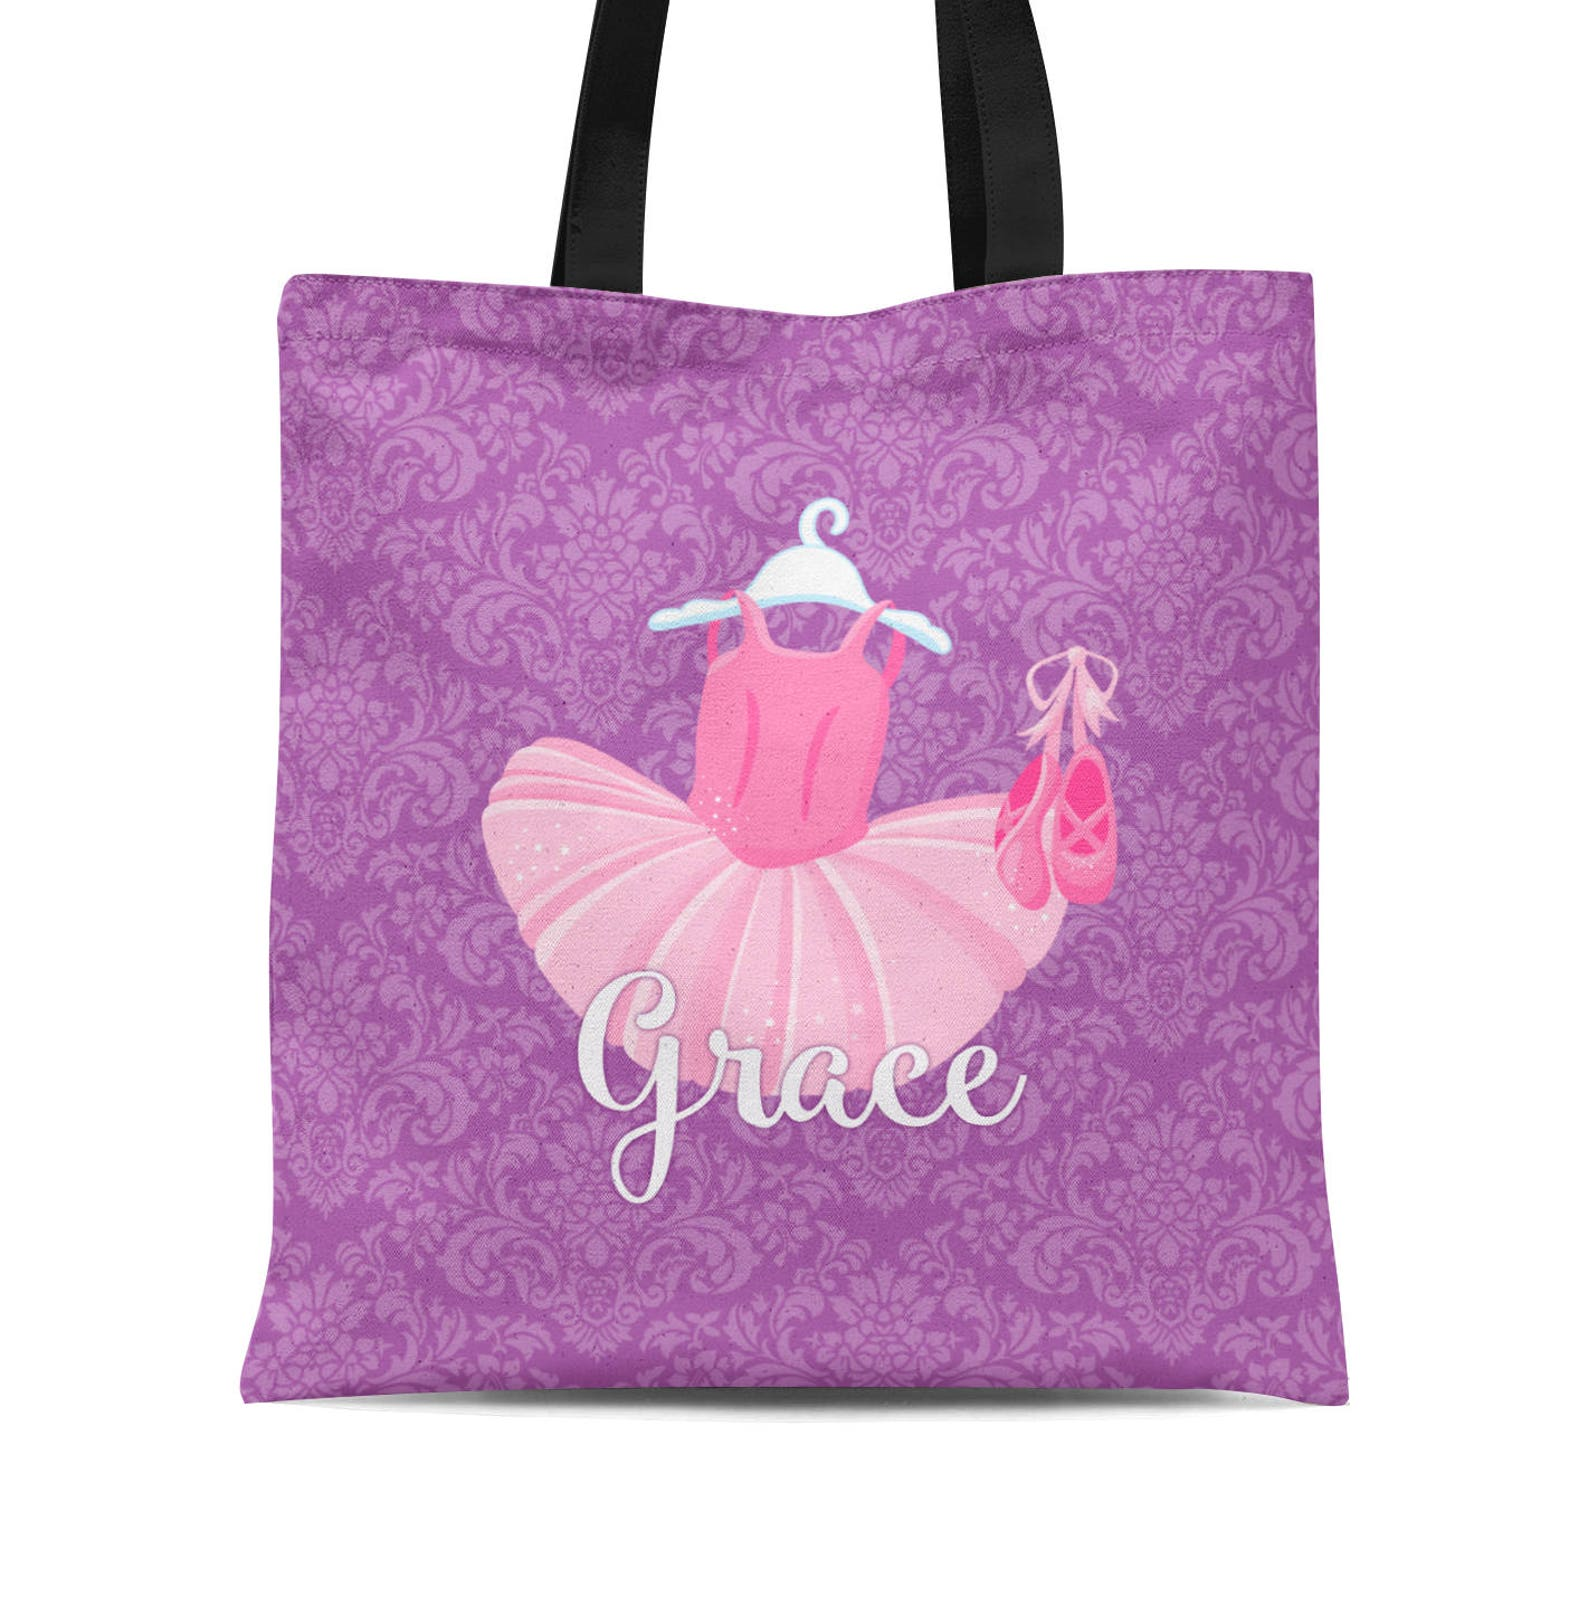 personalized ballerina tote bag - purple damask ballet bag, pink tutu ballet slipper ballet dancer tote sack - kids name gift ba